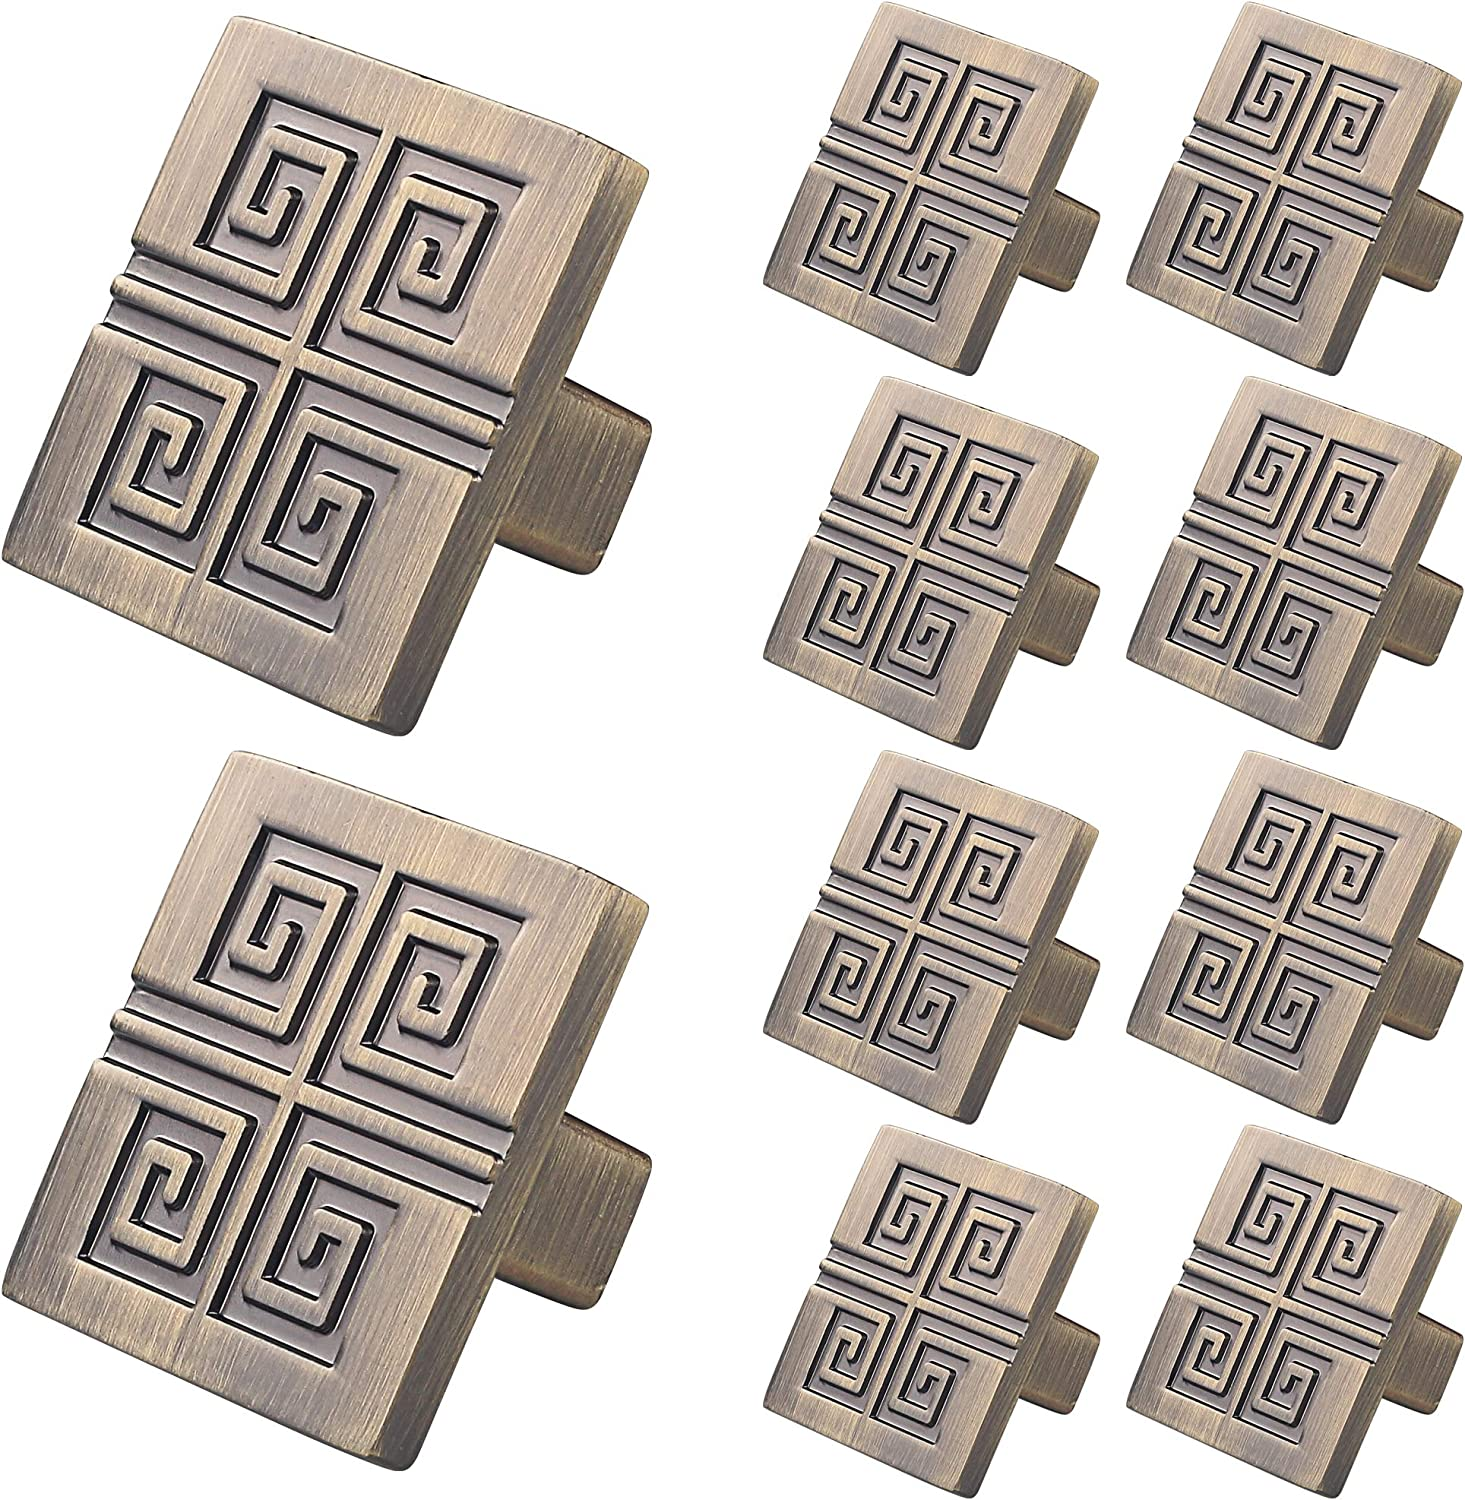 WELLOCKS Cabinet Knob 10 Pack Oil Rubbed Bronze, Heavy Duty Square Drawer Pulls, Zinc Alloy Cabinet Hardware for Office and Home Kitchen, Bathroom Cabinet, Dresser and Cupboard DIY(D024)